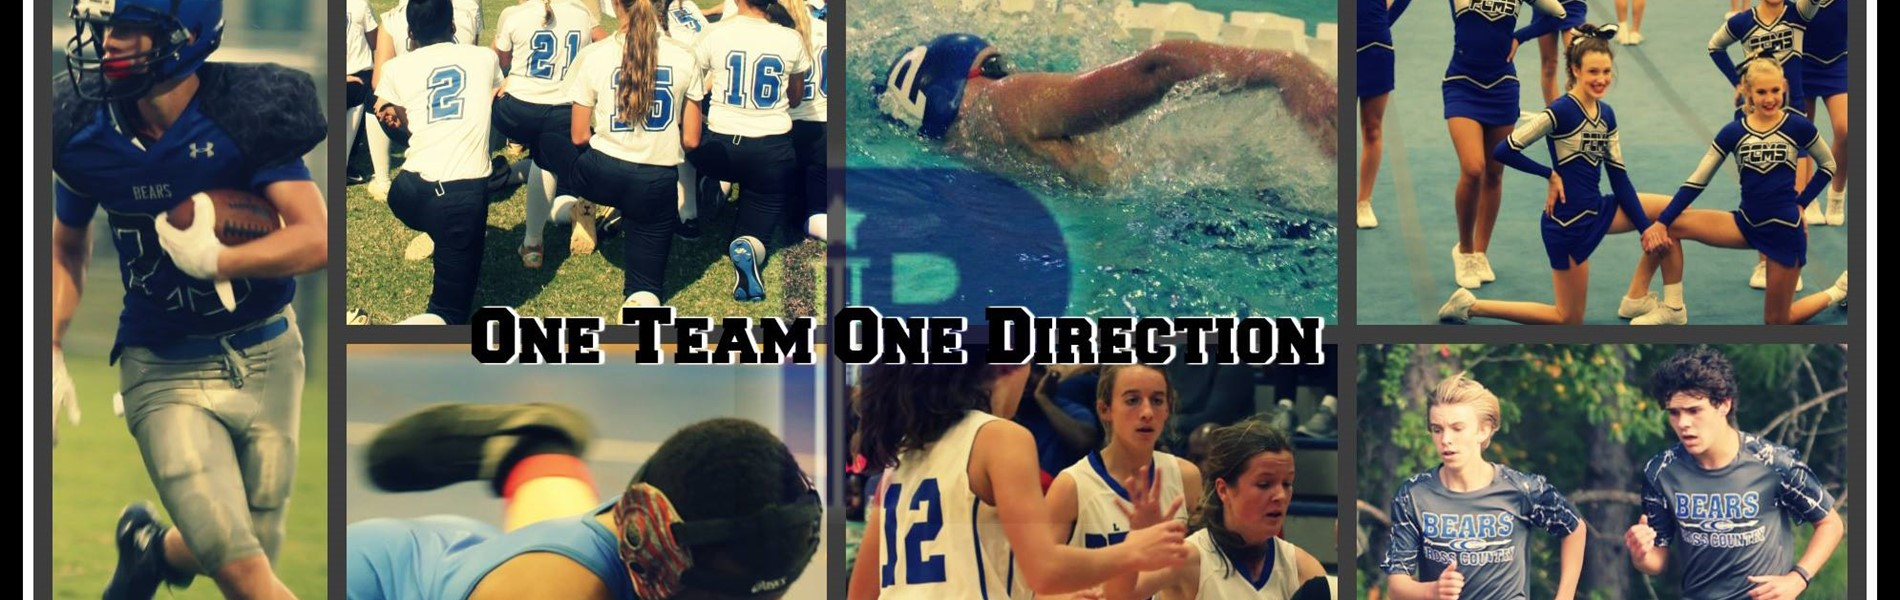 One Team One Direction